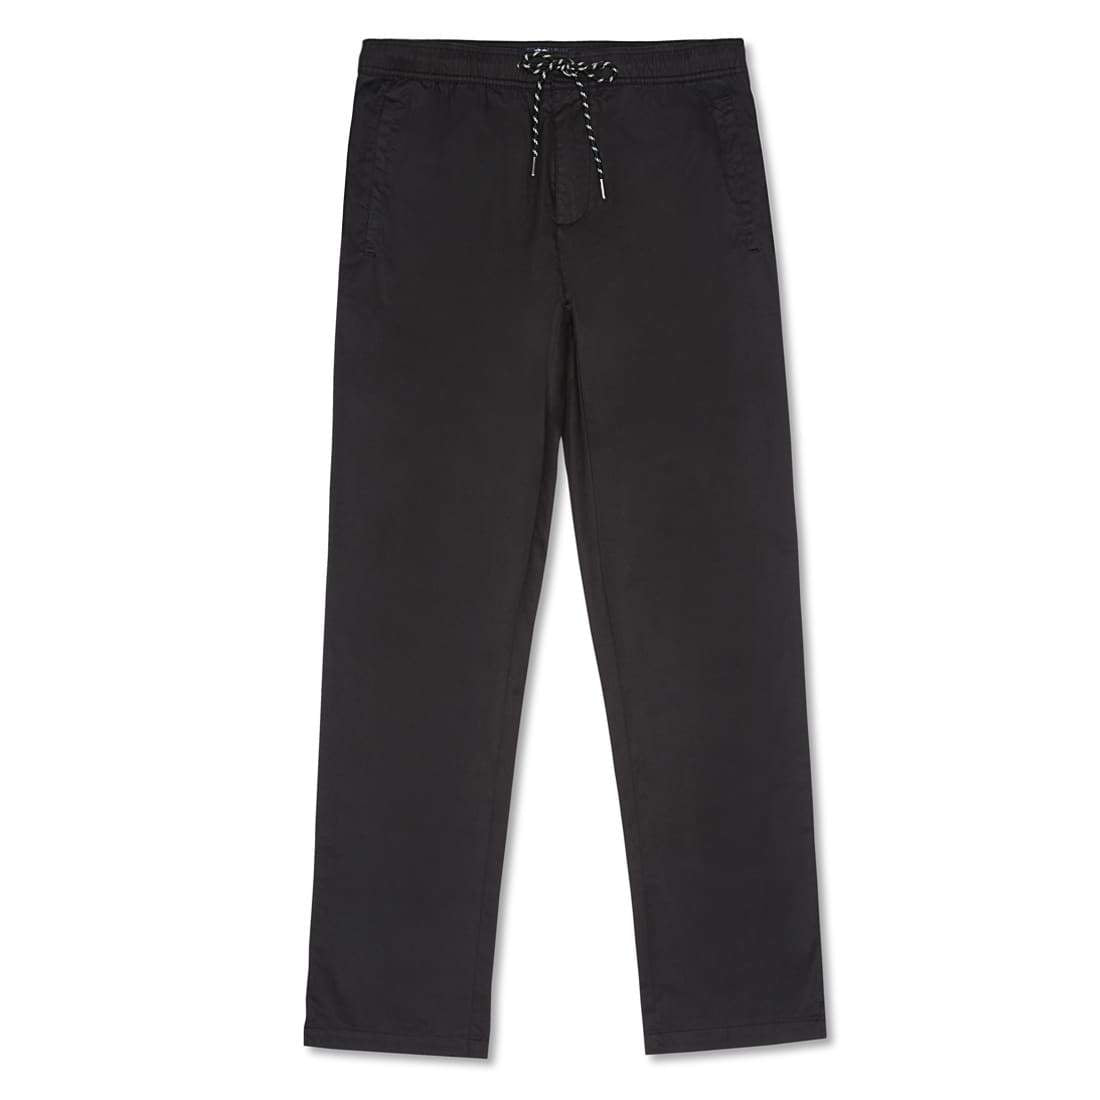 CRUISER PANT 2.0 - Zoomed